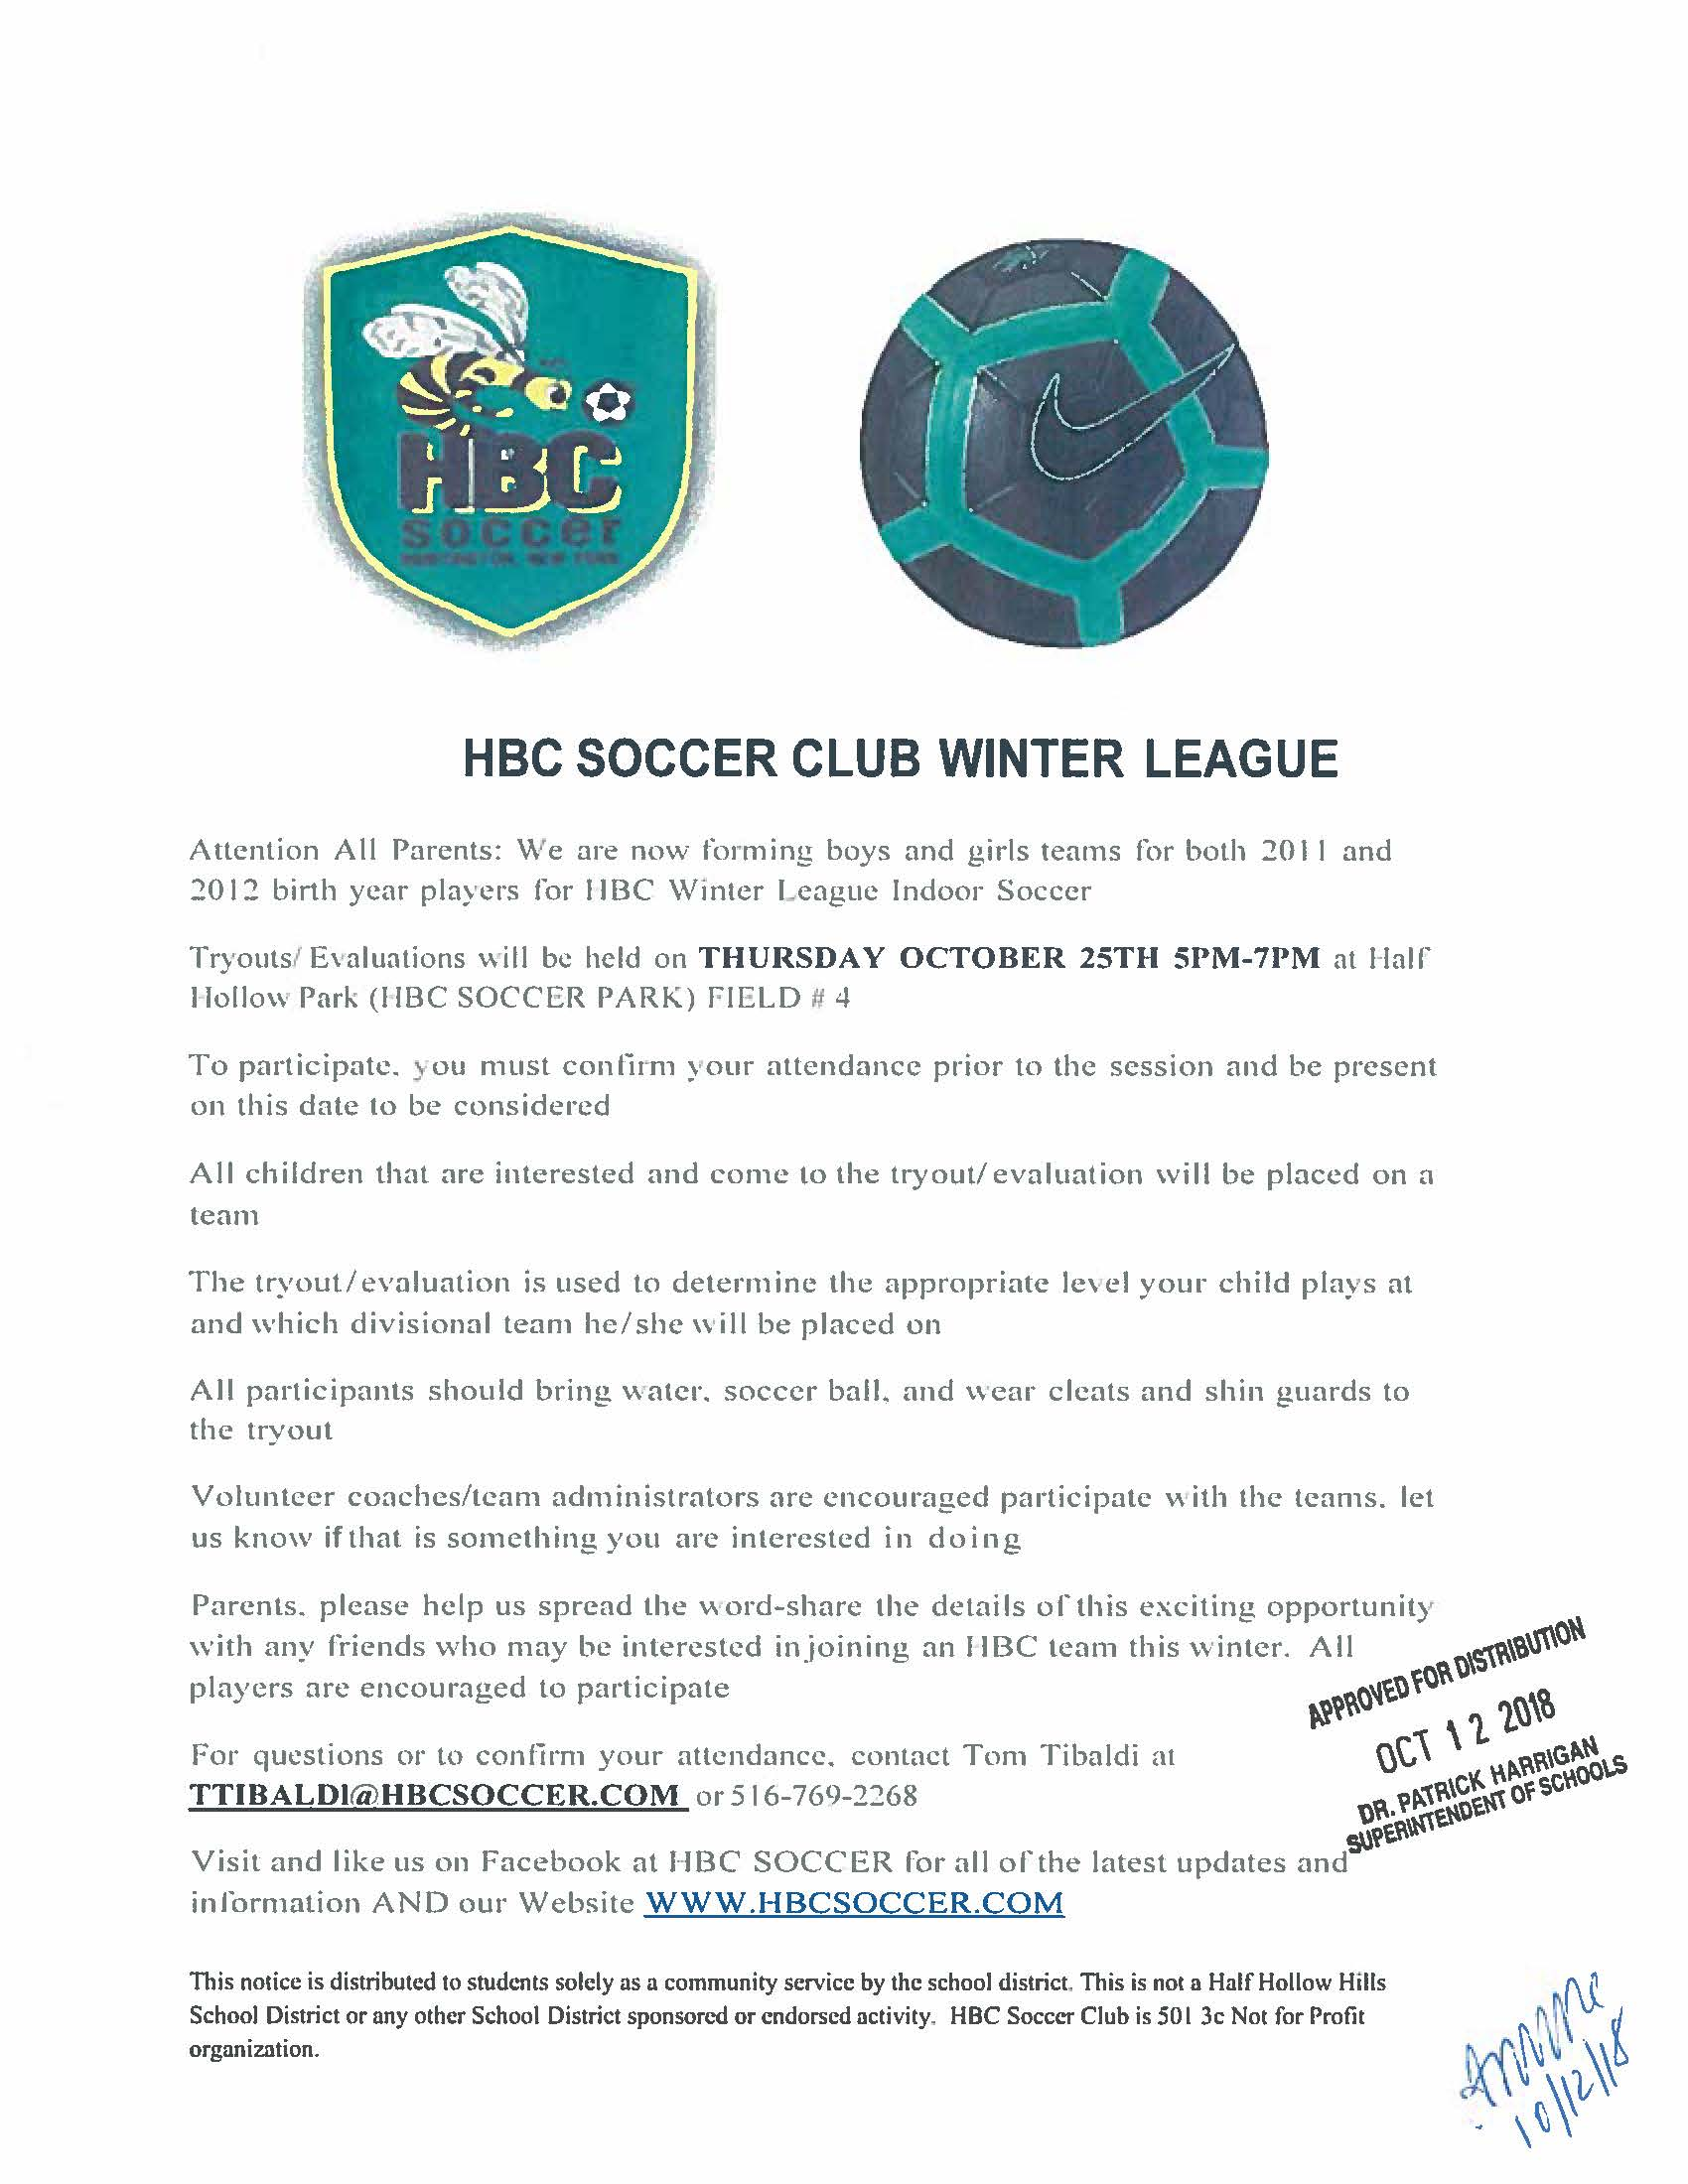 12c40a0e54f ... soccer world  HBC WINTER LEAGUE PLAY FOR FOR 2011 AND 2012 BOYS AND  GIRLS